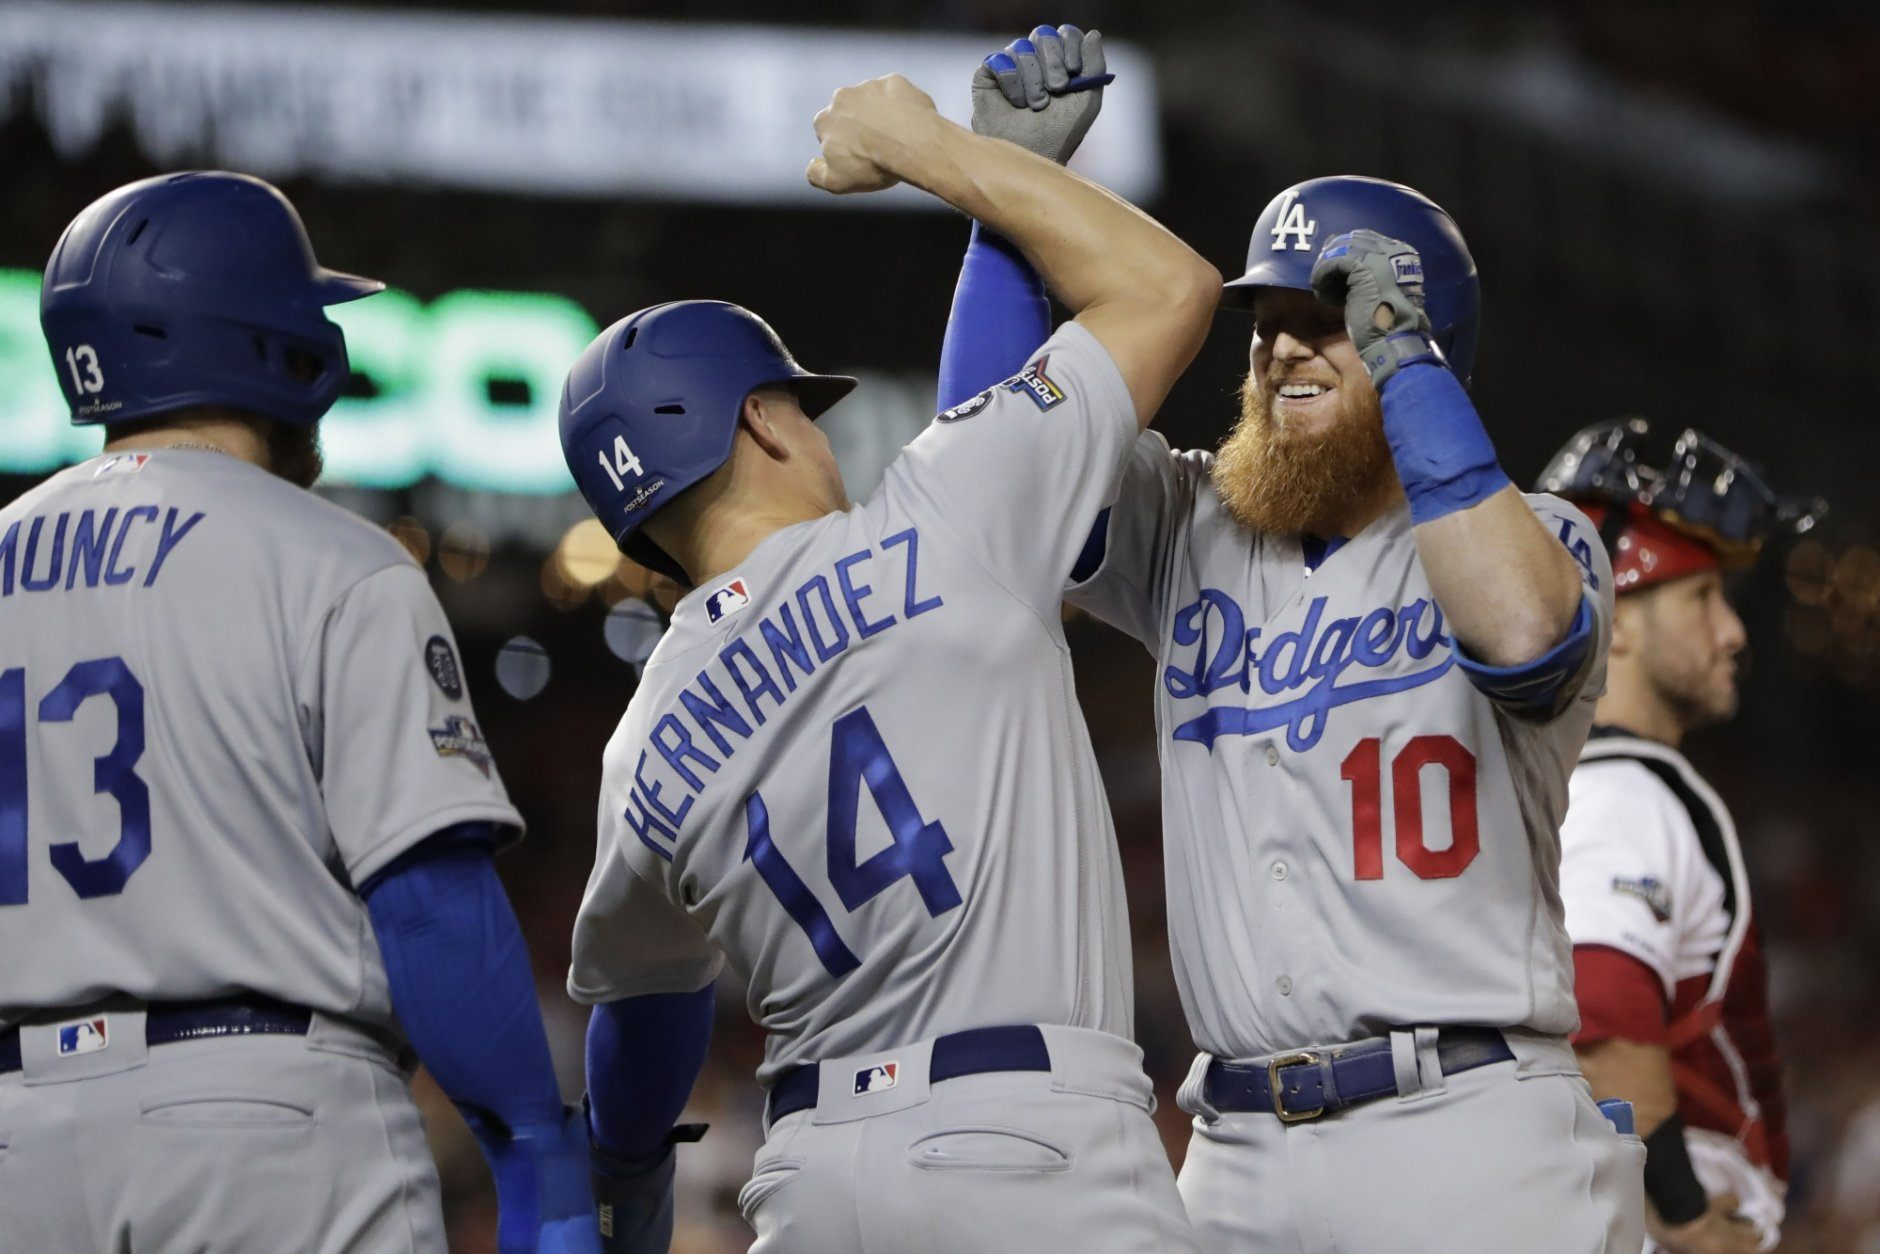 Los Angeles Dodgers third baseman Justin Turner (10) celebrates his three-run home run off Washington Nationals relief pitcher Wander Suero with teammates Enrique Hernandez (14) and Max Muncy (13) during the sixth inning in Game 3 of a baseball National League Division Series on Sunday, Oct. 6, 2019, in Washington. (AP Photo/Julio Cortez)